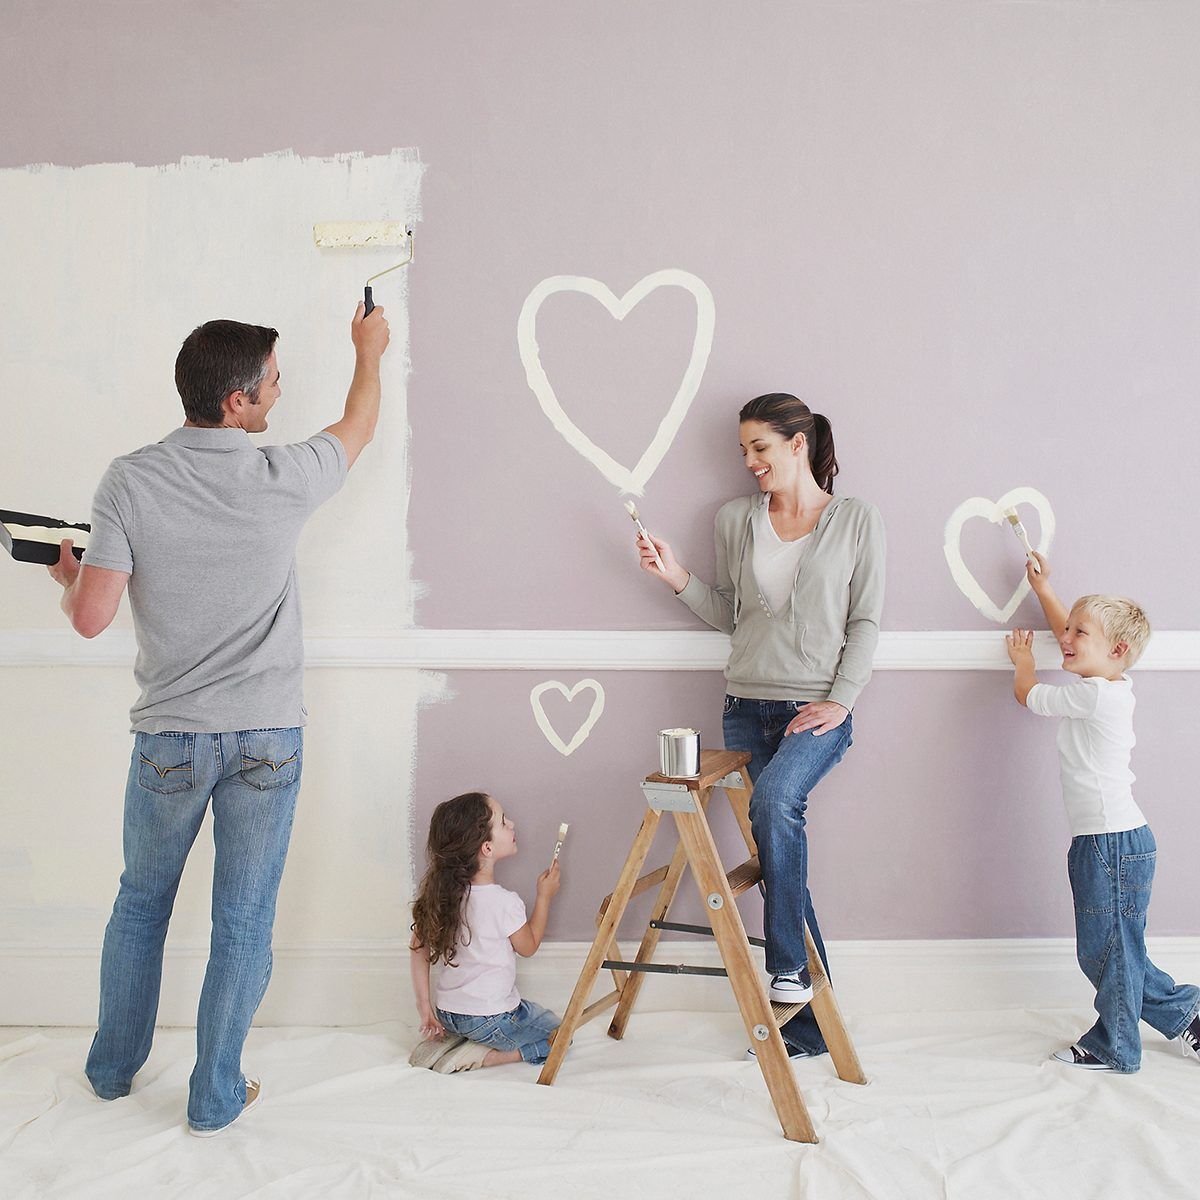 Man and woman with boy and girl painting hearts on wall